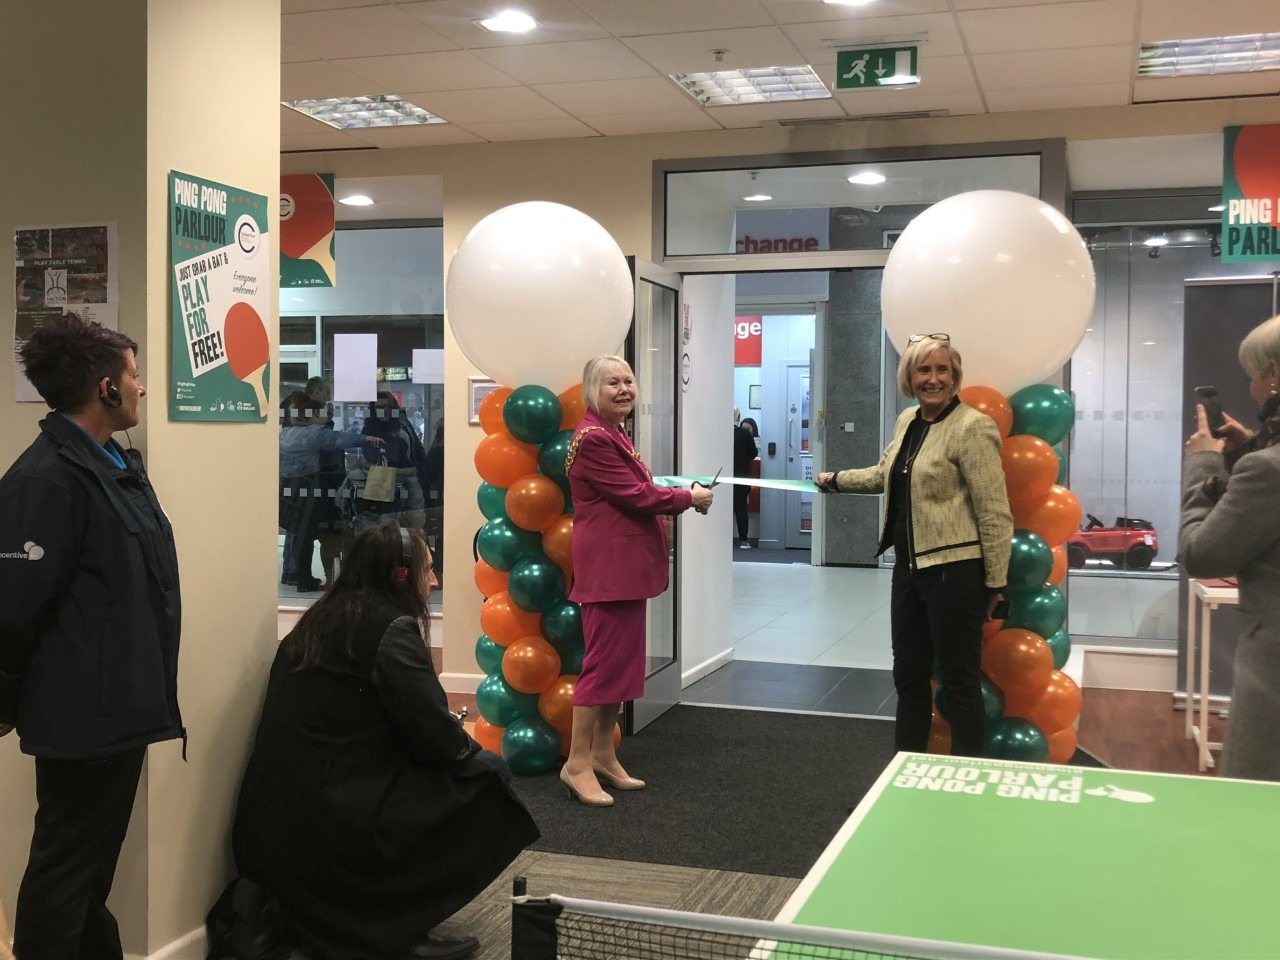 Champ Andrea Holt launches new ping pong parlour in Crompton Place